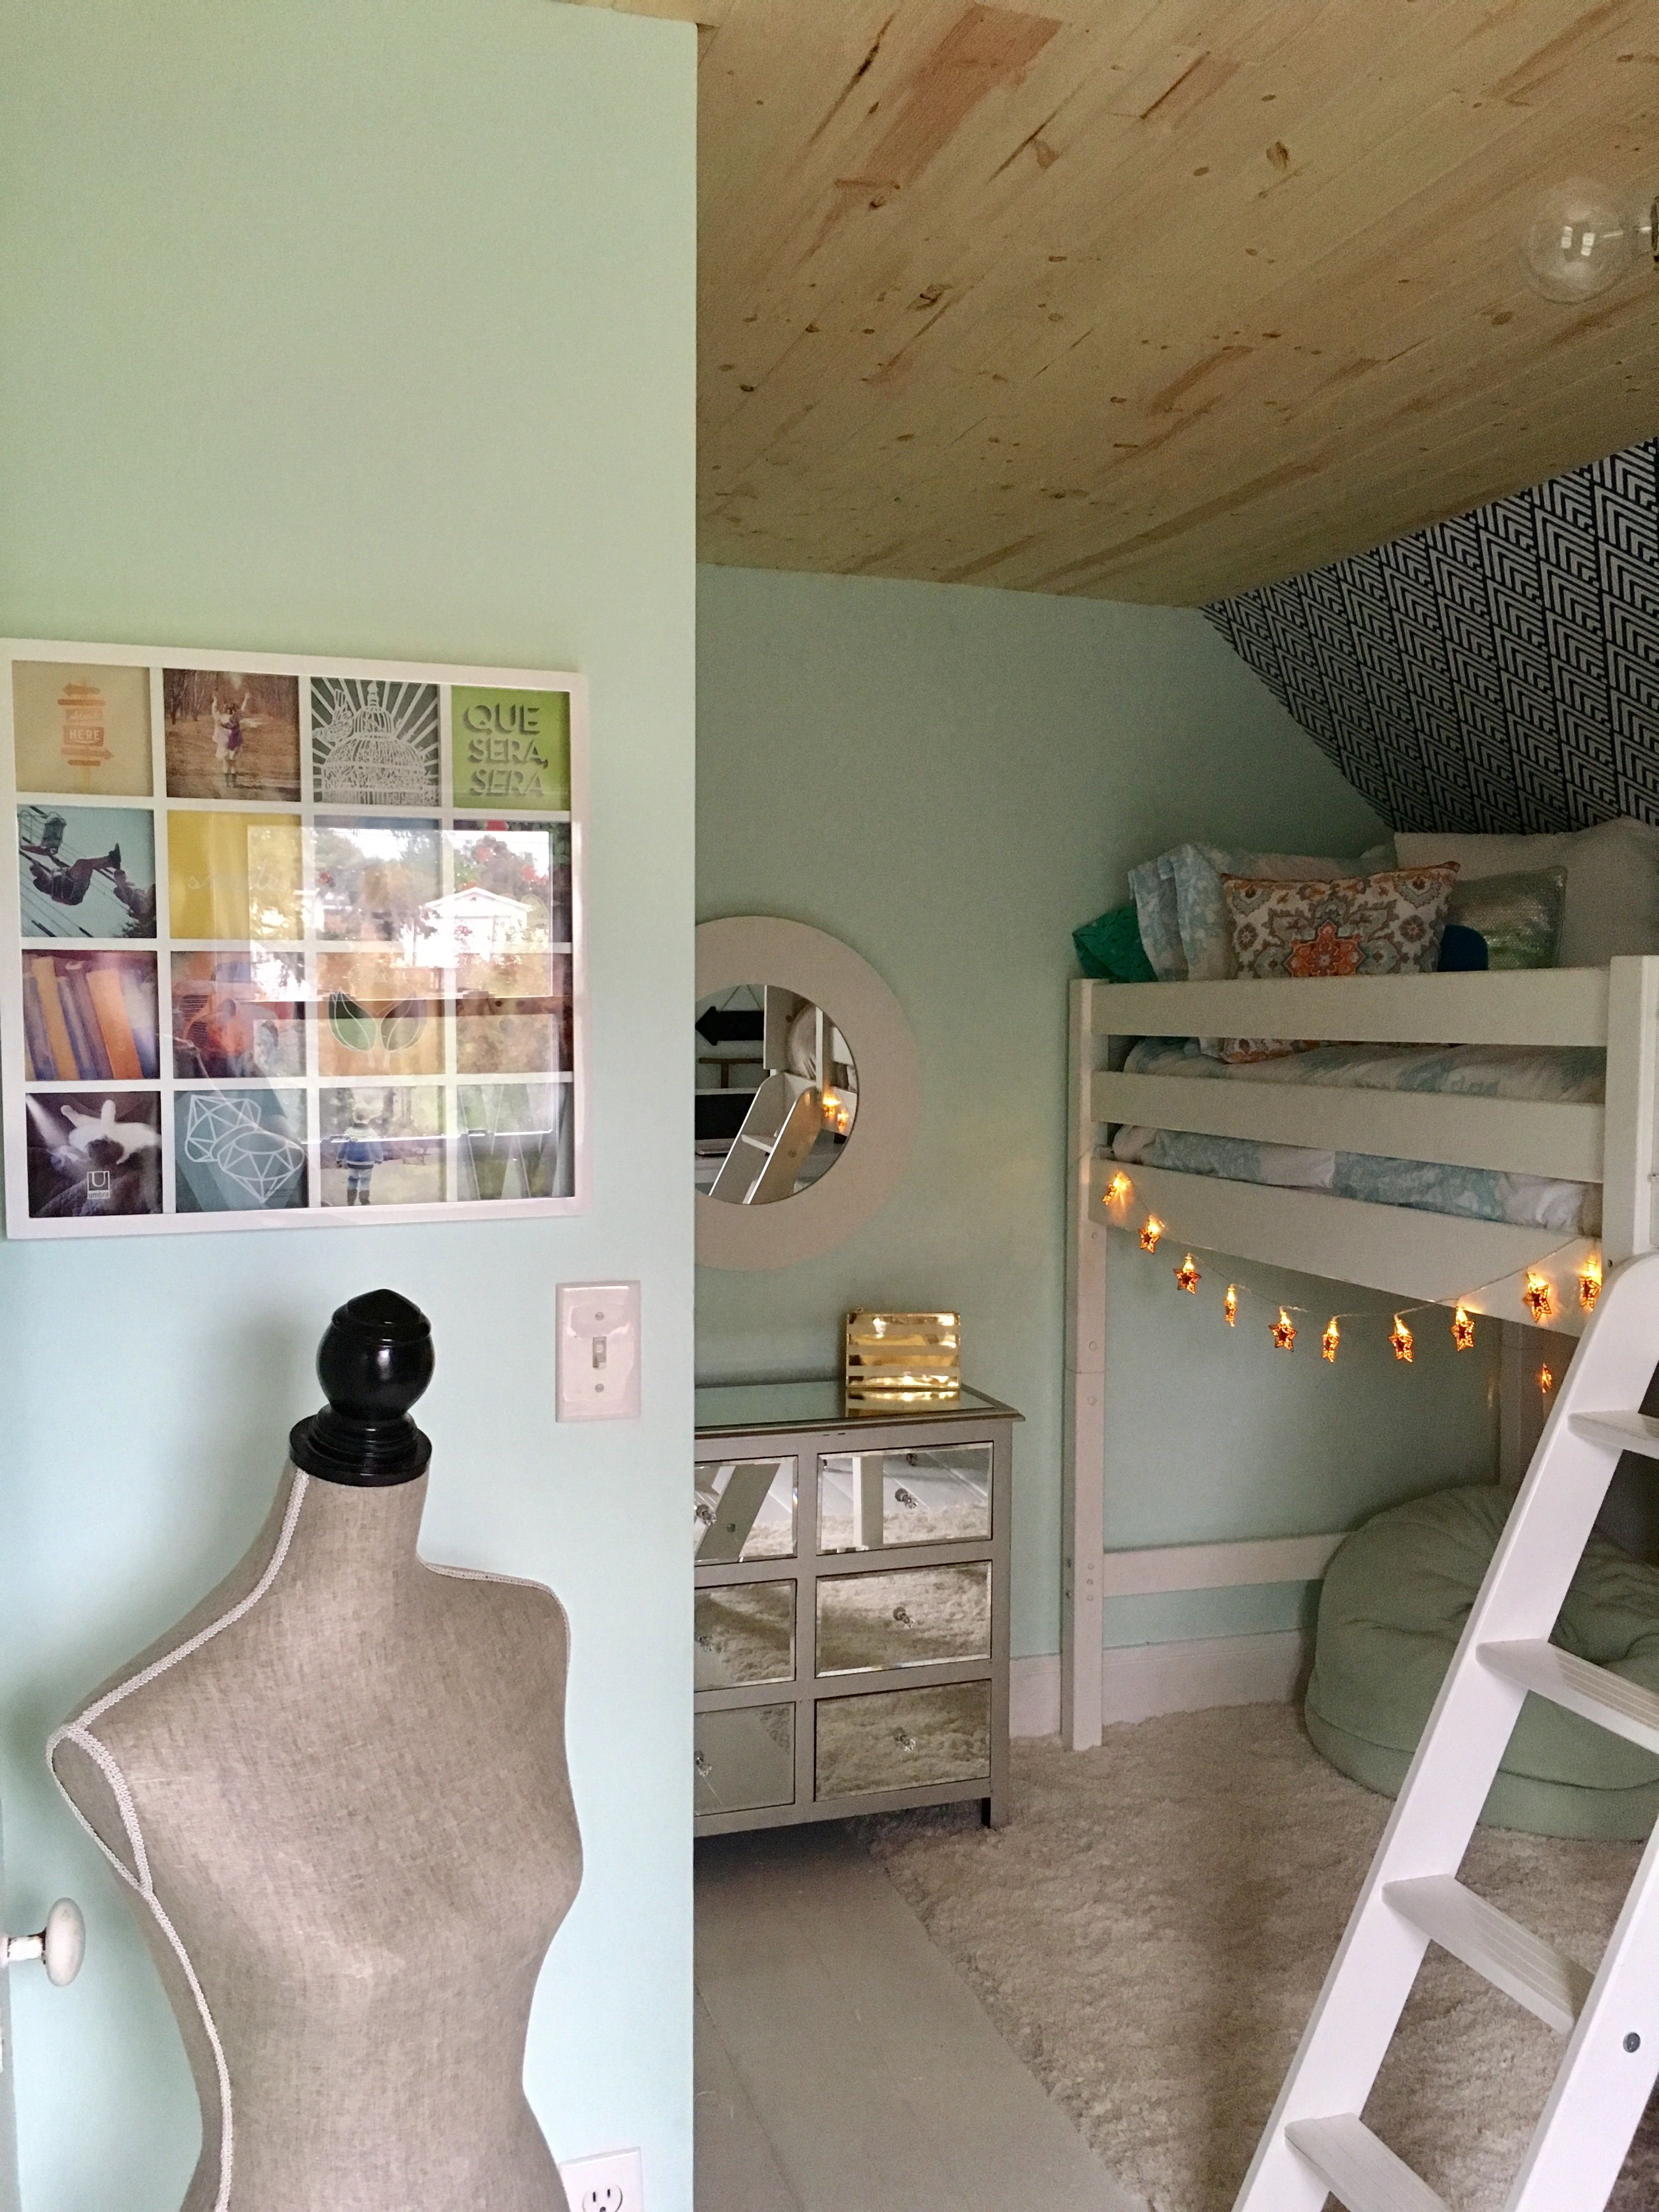 Offset window behind bed  pin by julie leighton on addieus room  pinterest  room